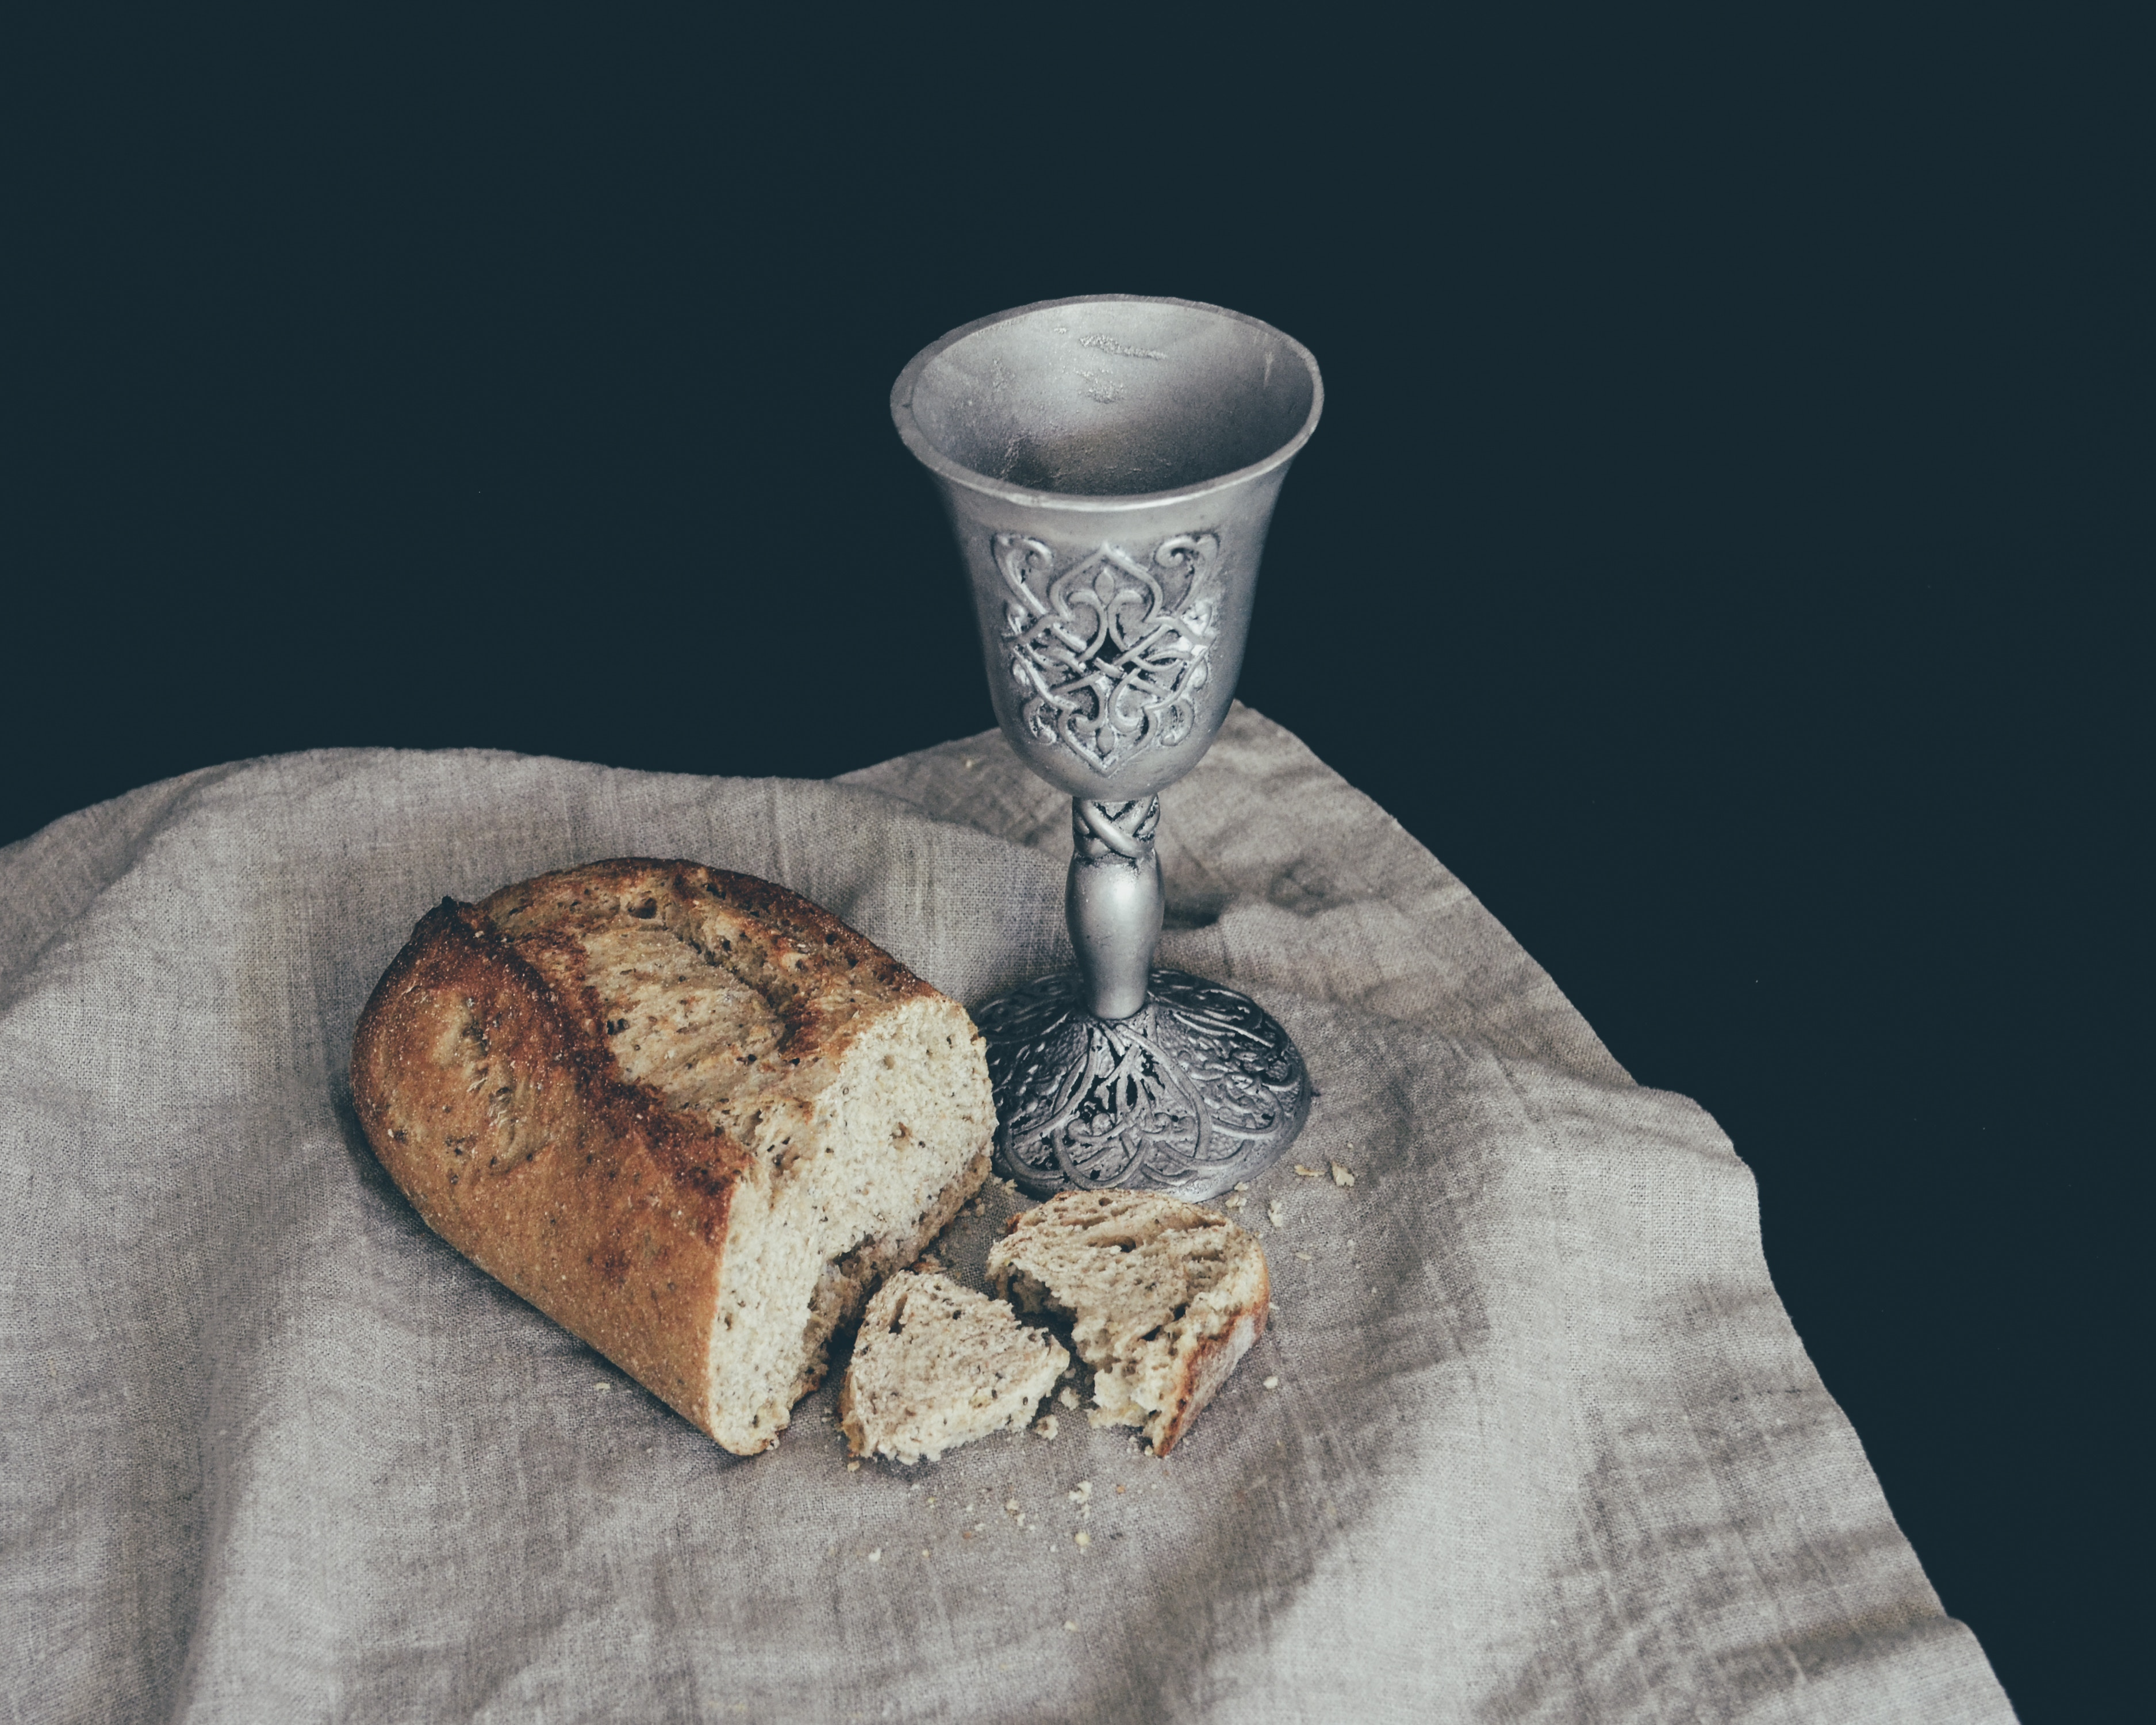 The Significance of the Bread & Cup